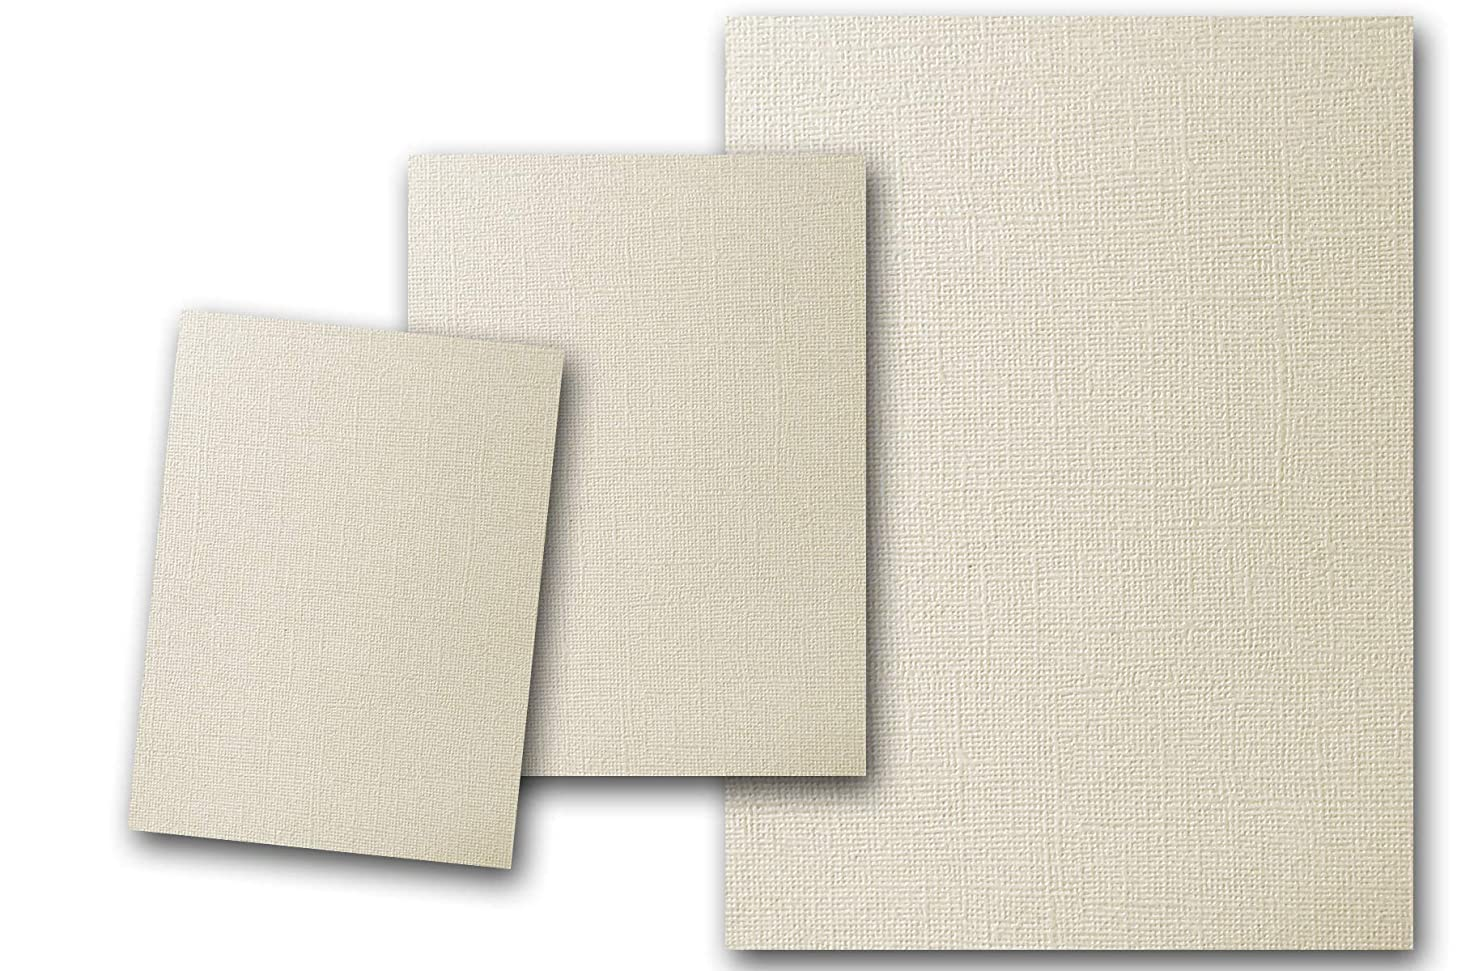 Premium Pearlized Metallic Textured Dove Ivory Card Stock 80 Sheets - Matches Martha Stewart Dove - Great for Scrapbooking, Crafts, Flat Cards, DIY Projects, Etc. (4 x 6)